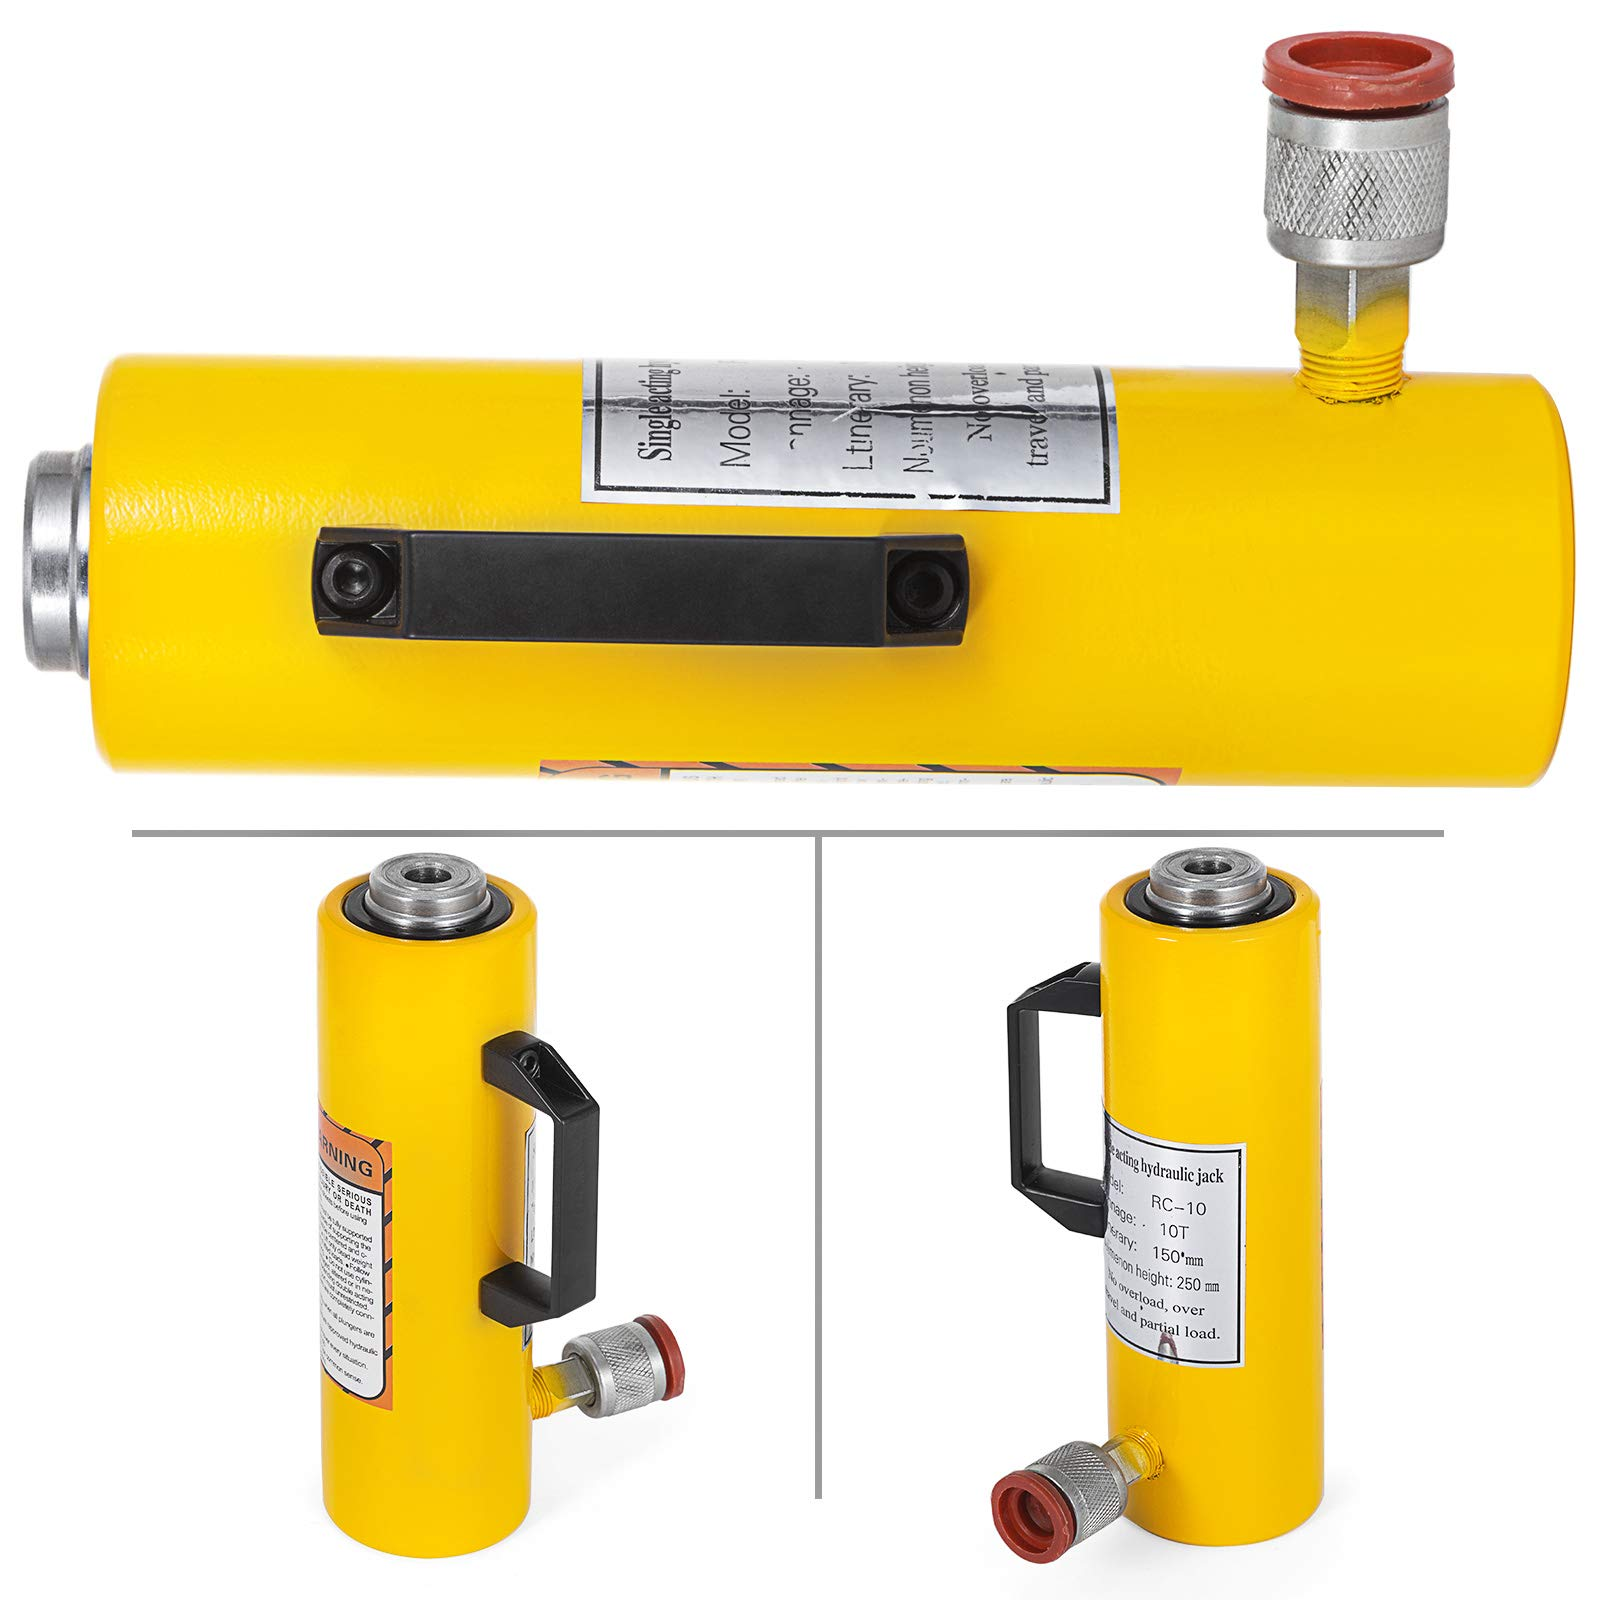 Mophorn 10T 6'' Stroke Hydraulic Cylinder Jack Solid Single Acting Hydraulic Ram Cylinder 150mm Hydraulic Lifting Cylinders for Riggers Fabricators (10T 6'') by Mophorn (Image #4)